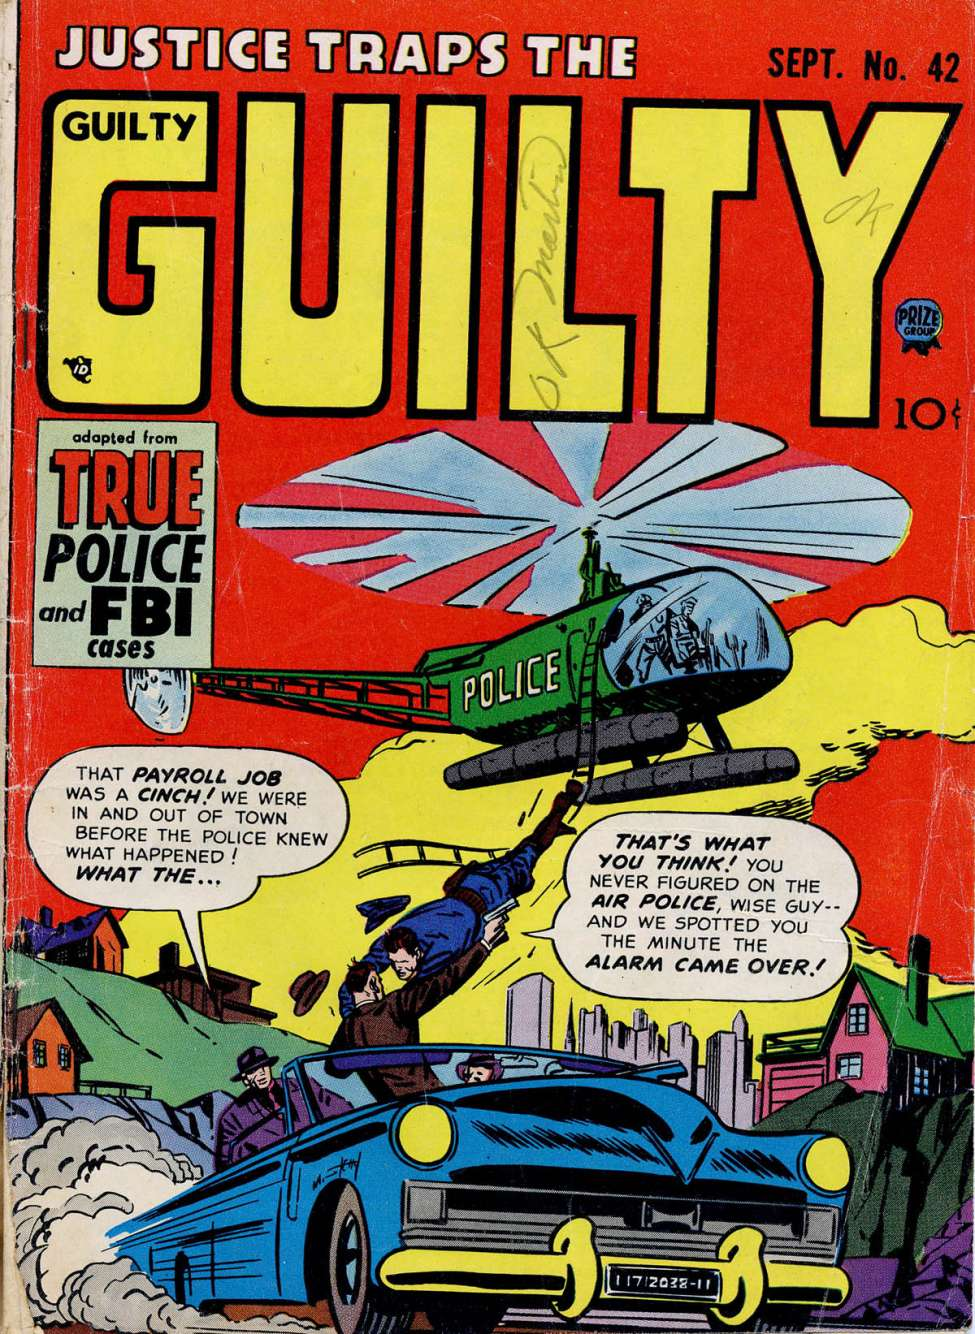 Comic Book Cover For Justice Traps the Guilty v5 12 (42)